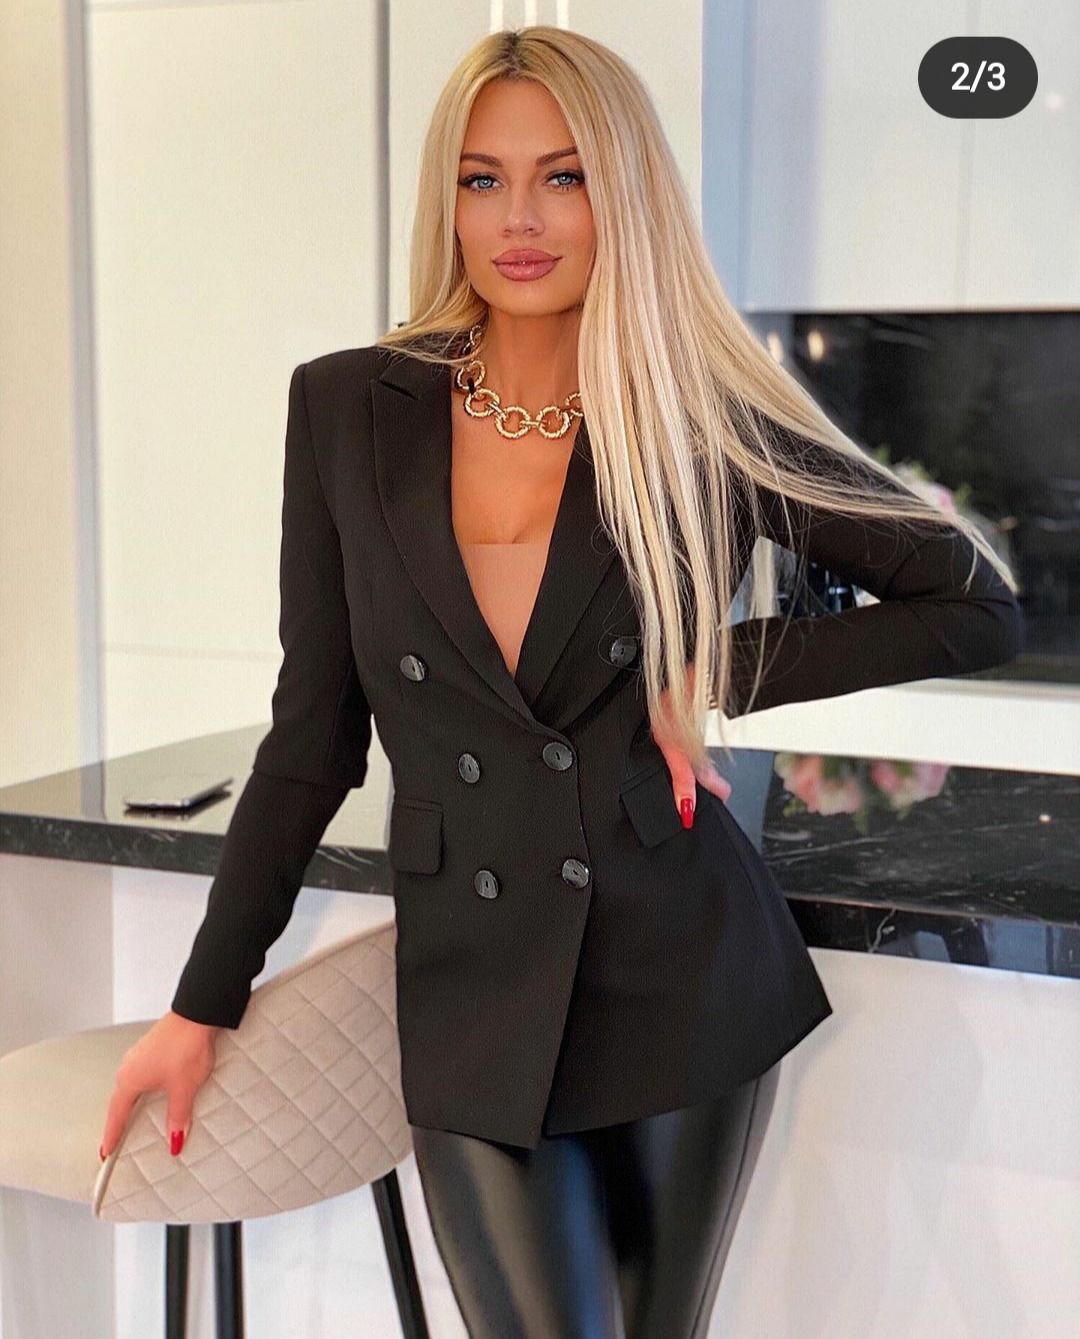 Woman Worship in 2020 Shiny pants, Fashion, Clothes for